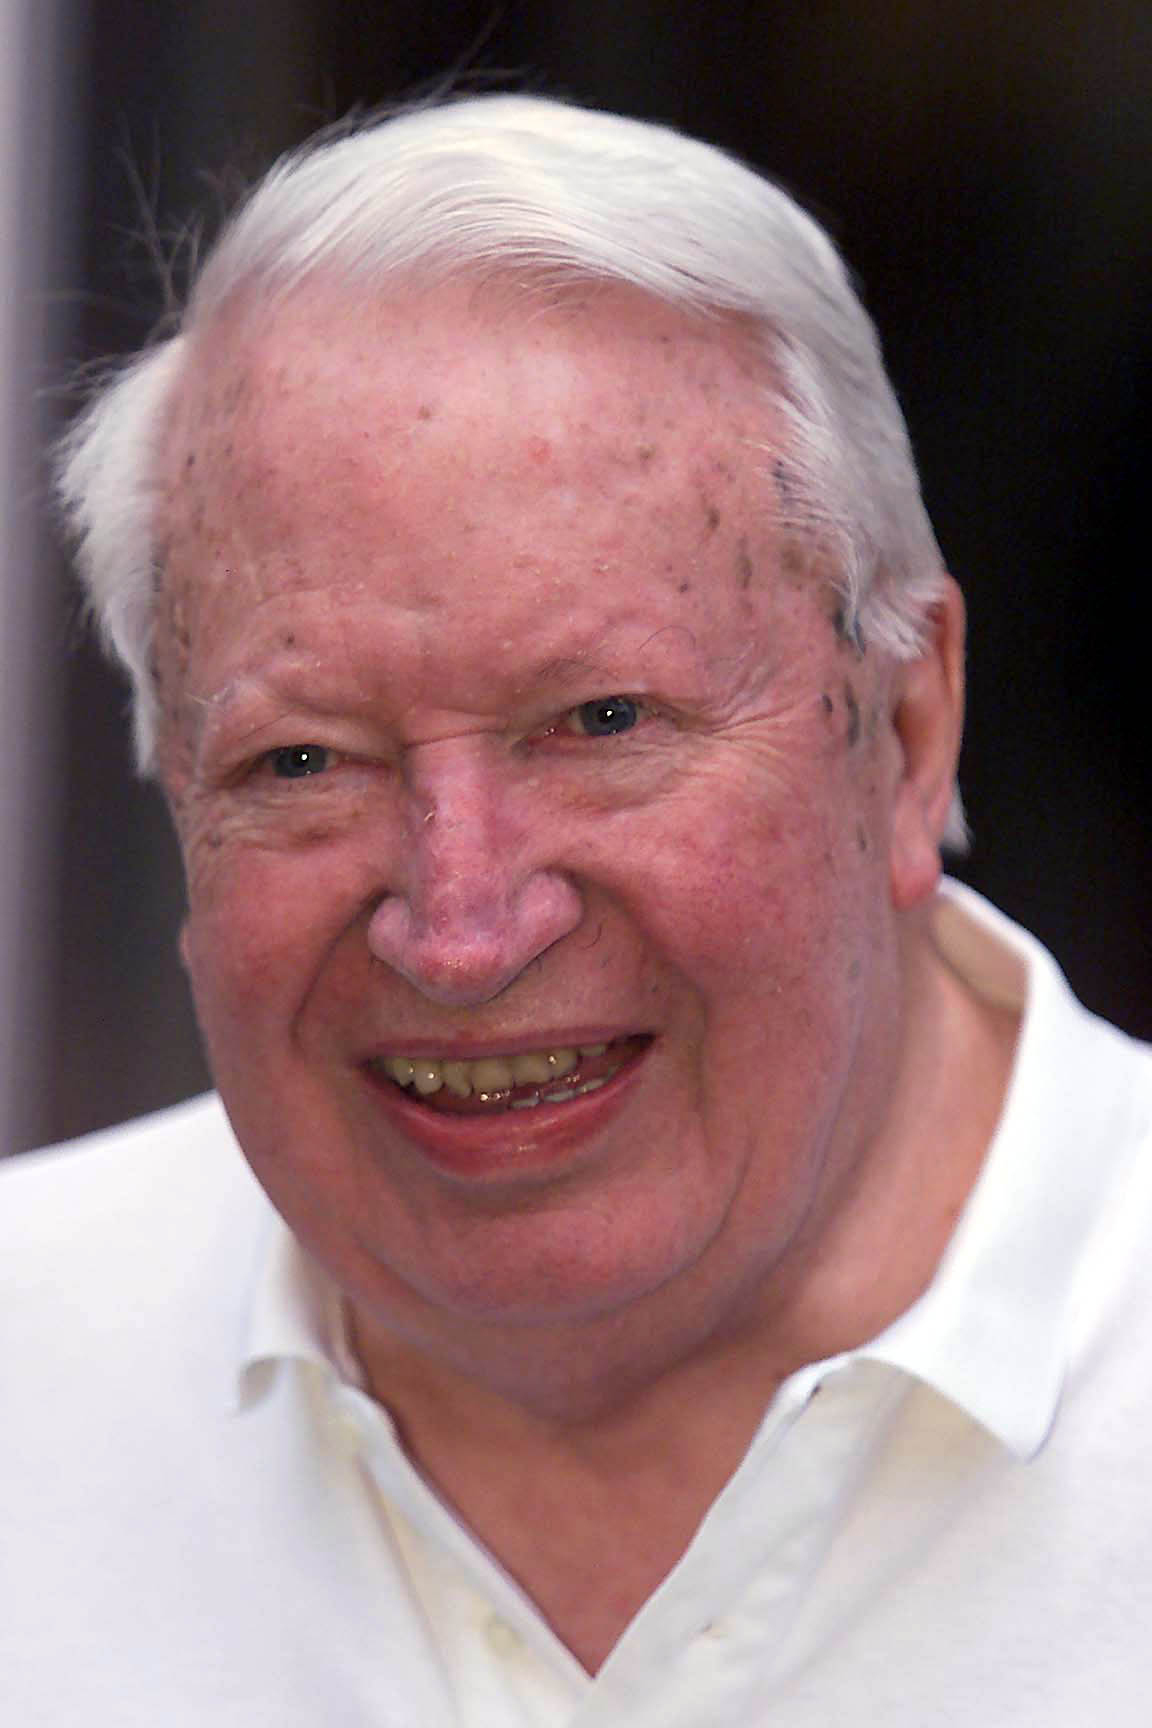 File photo dated 24/10/00 of the late Sir Edward Heath, as the police force investigating allegations that former prime minister Sir Edward Heath was a paedophile will publish its findings today. PRESS ASSOCIATION Photo. Issue date: Thursday October 5, 20